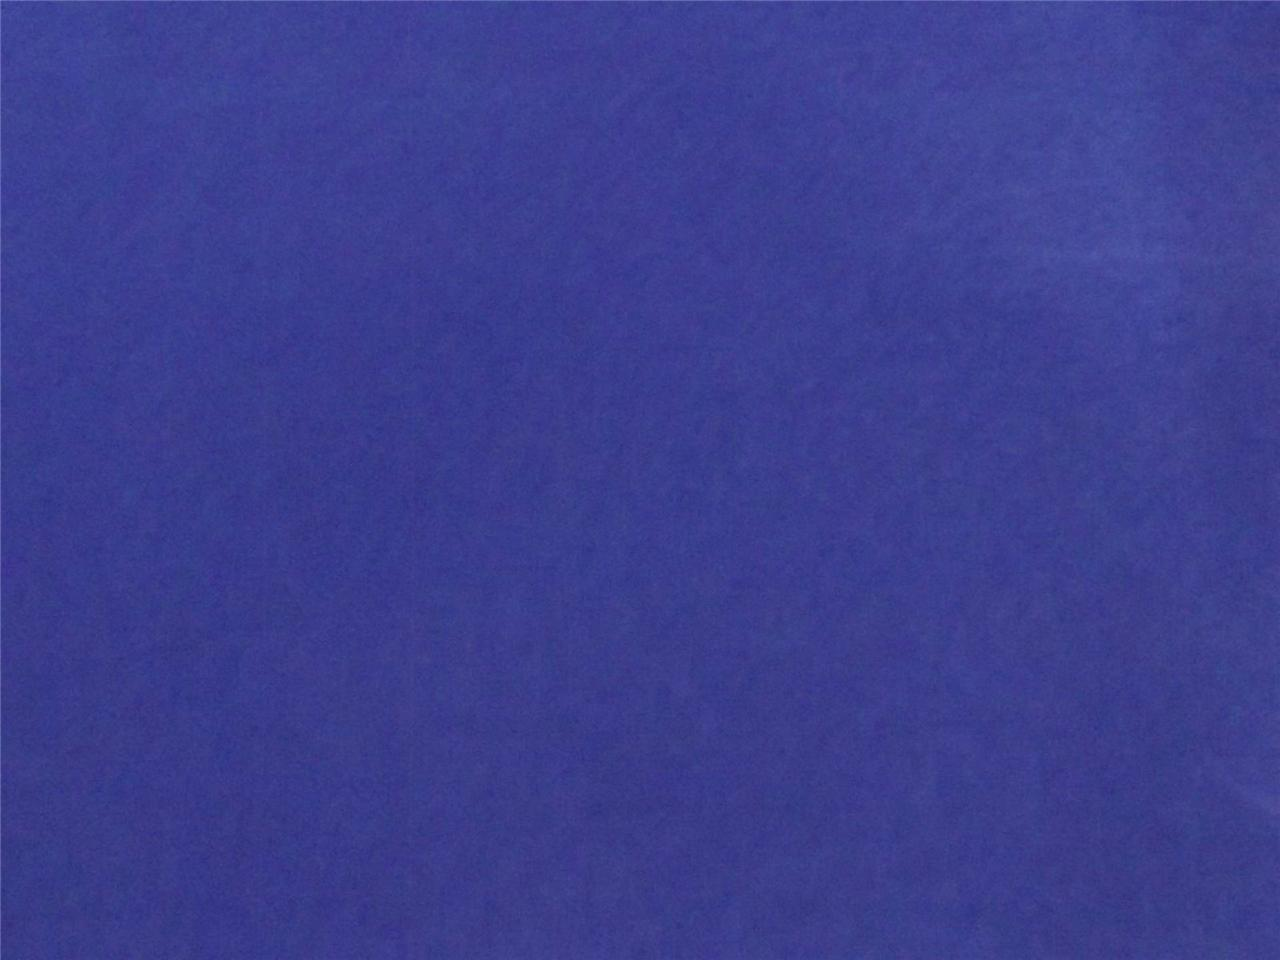 Royal Blue Flocked Velvet Fabric Upholstery Curtain Drapery Material